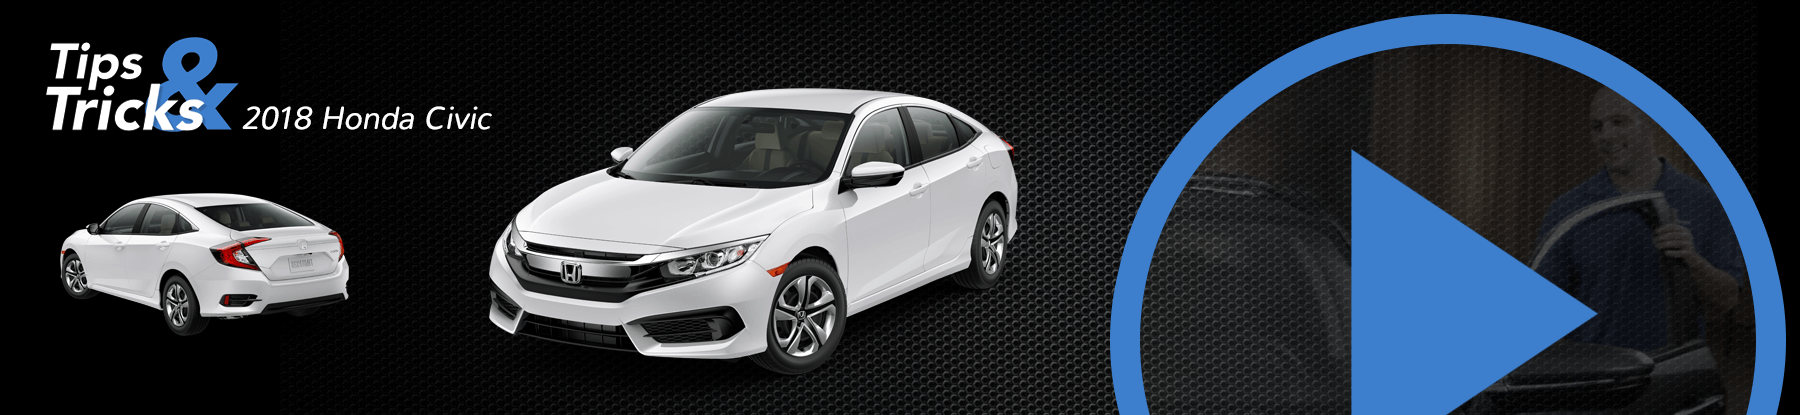 2018 Honda Civic Tips and Tricks